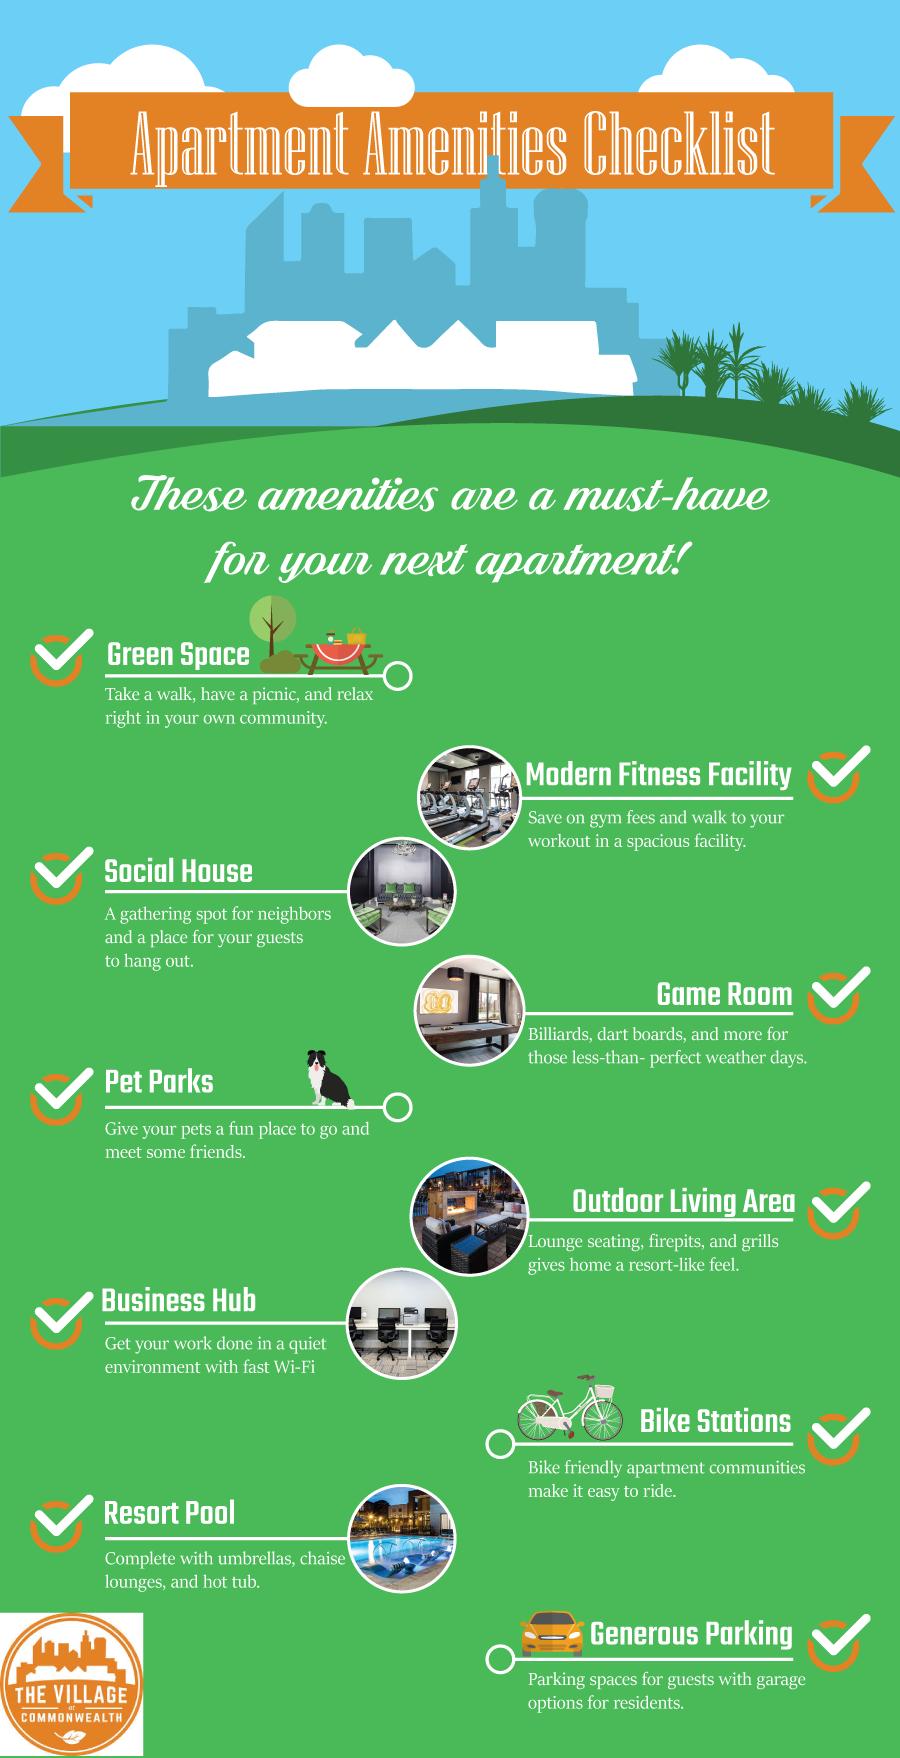 Apartment Amenities Checklist Infographic